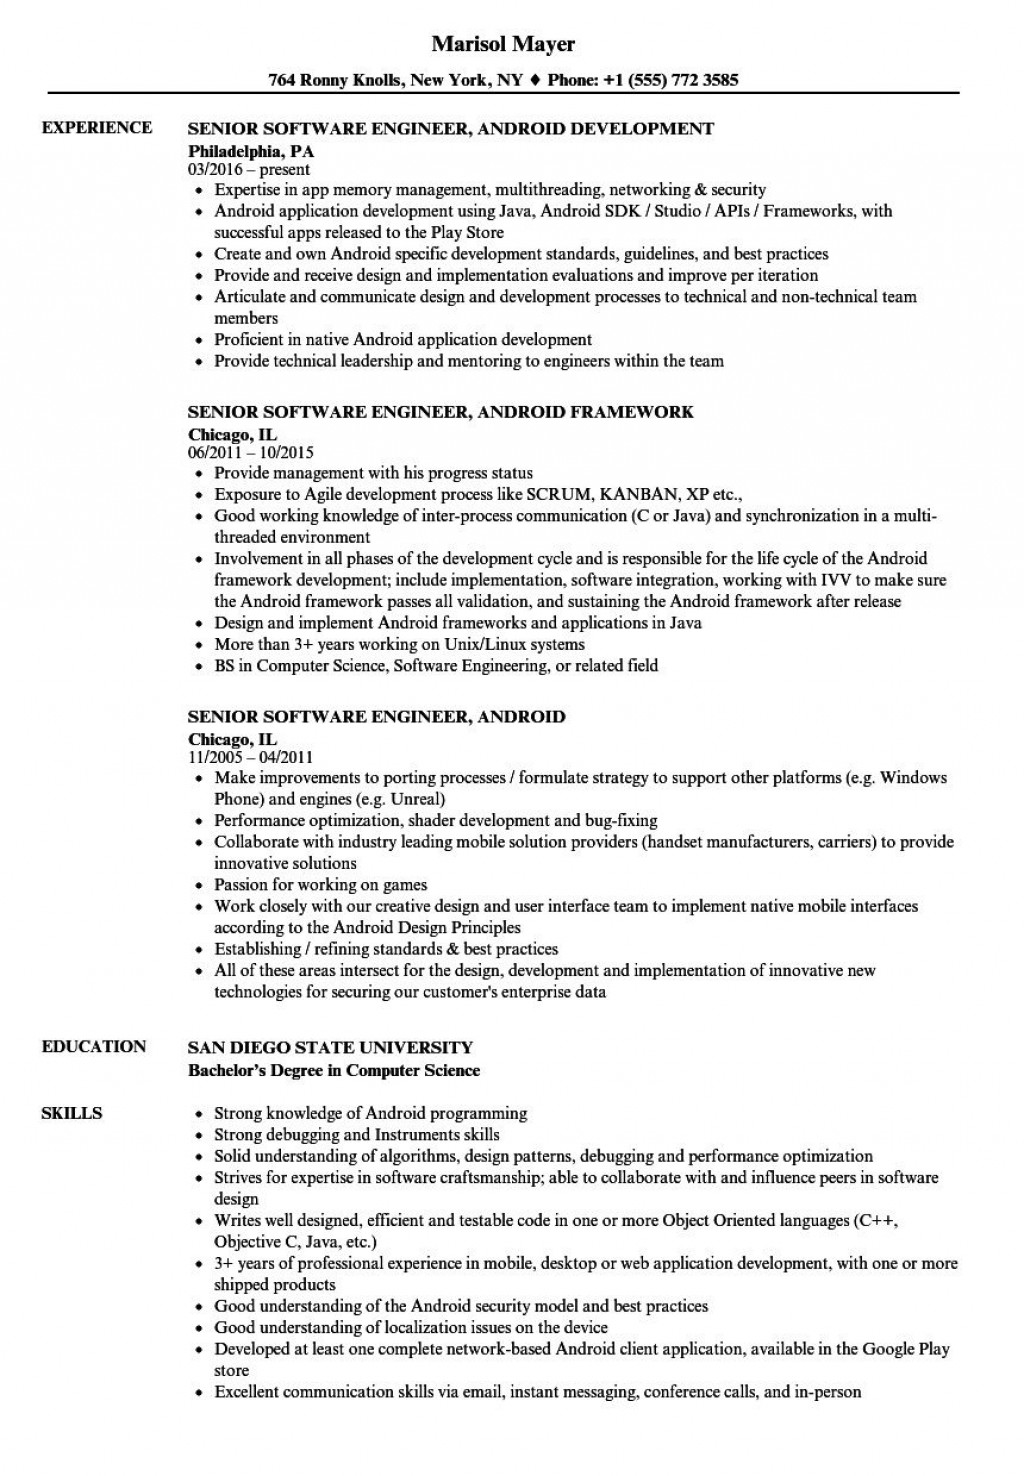 004 Magnificent Software Engineer Resume Template Inspiration  Word Format Free Download MicrosoftLarge